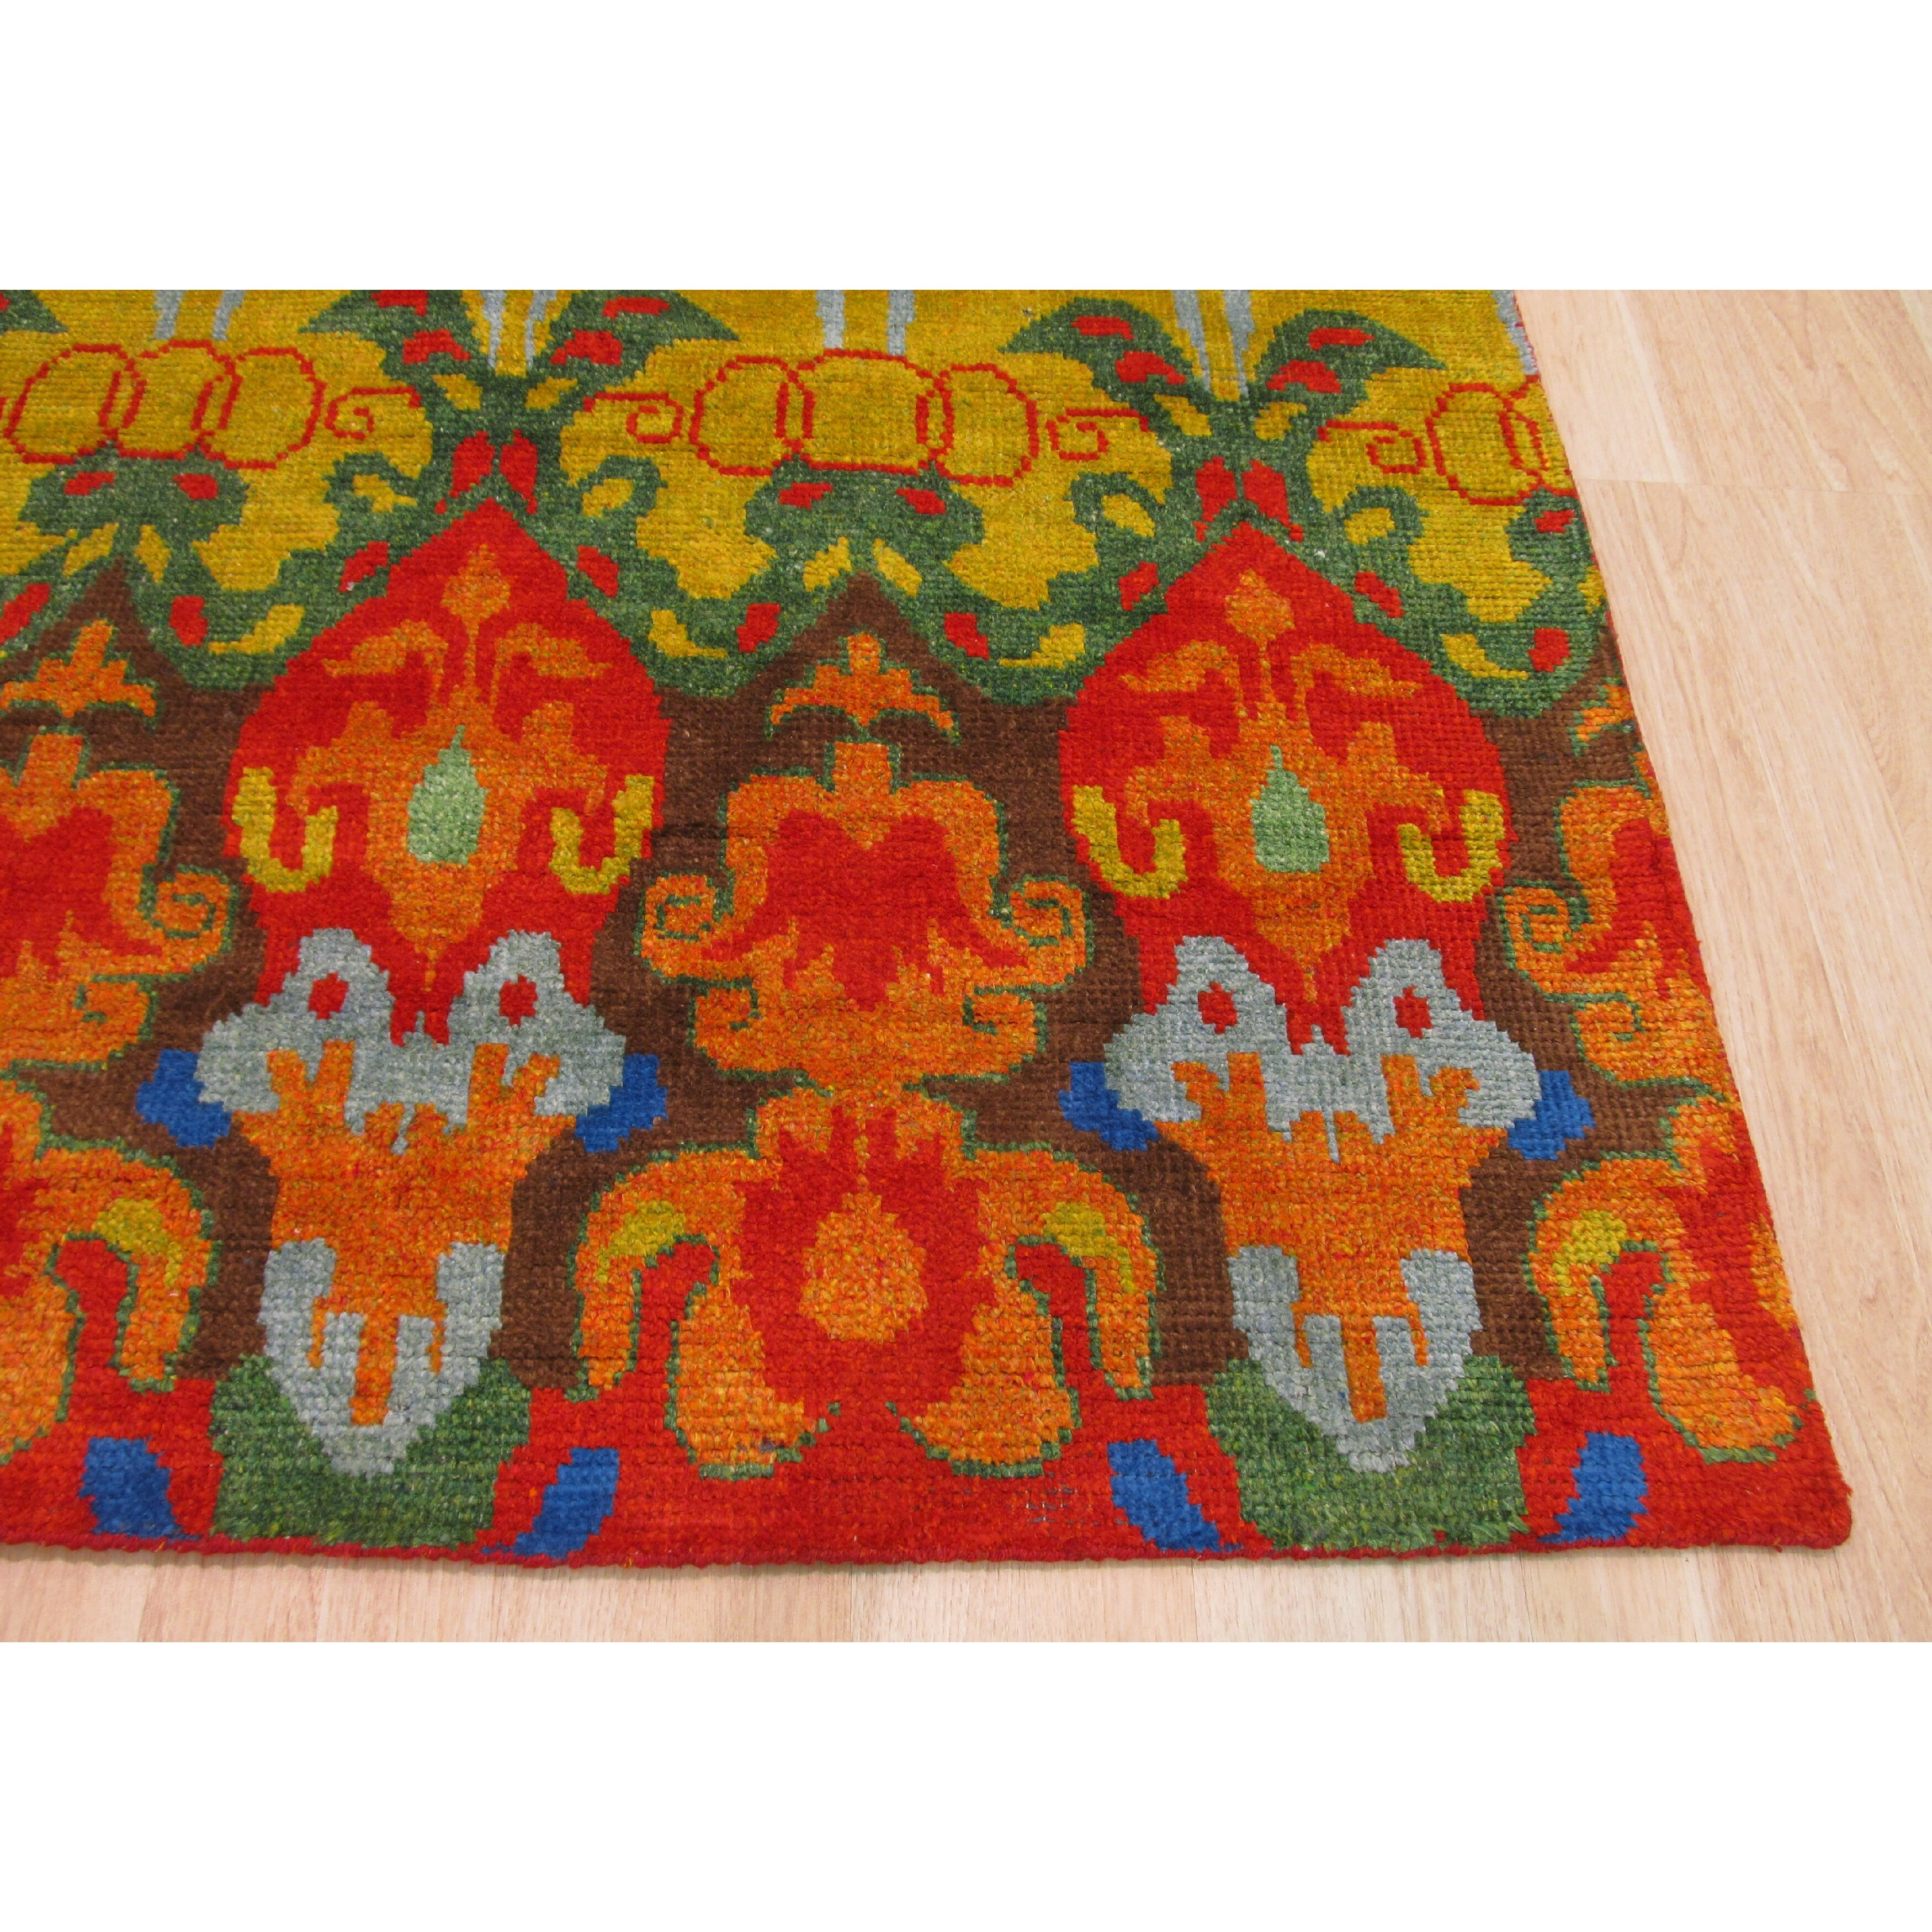 Eastern Rugs Hand-Knotted Orange/Green Area Rug